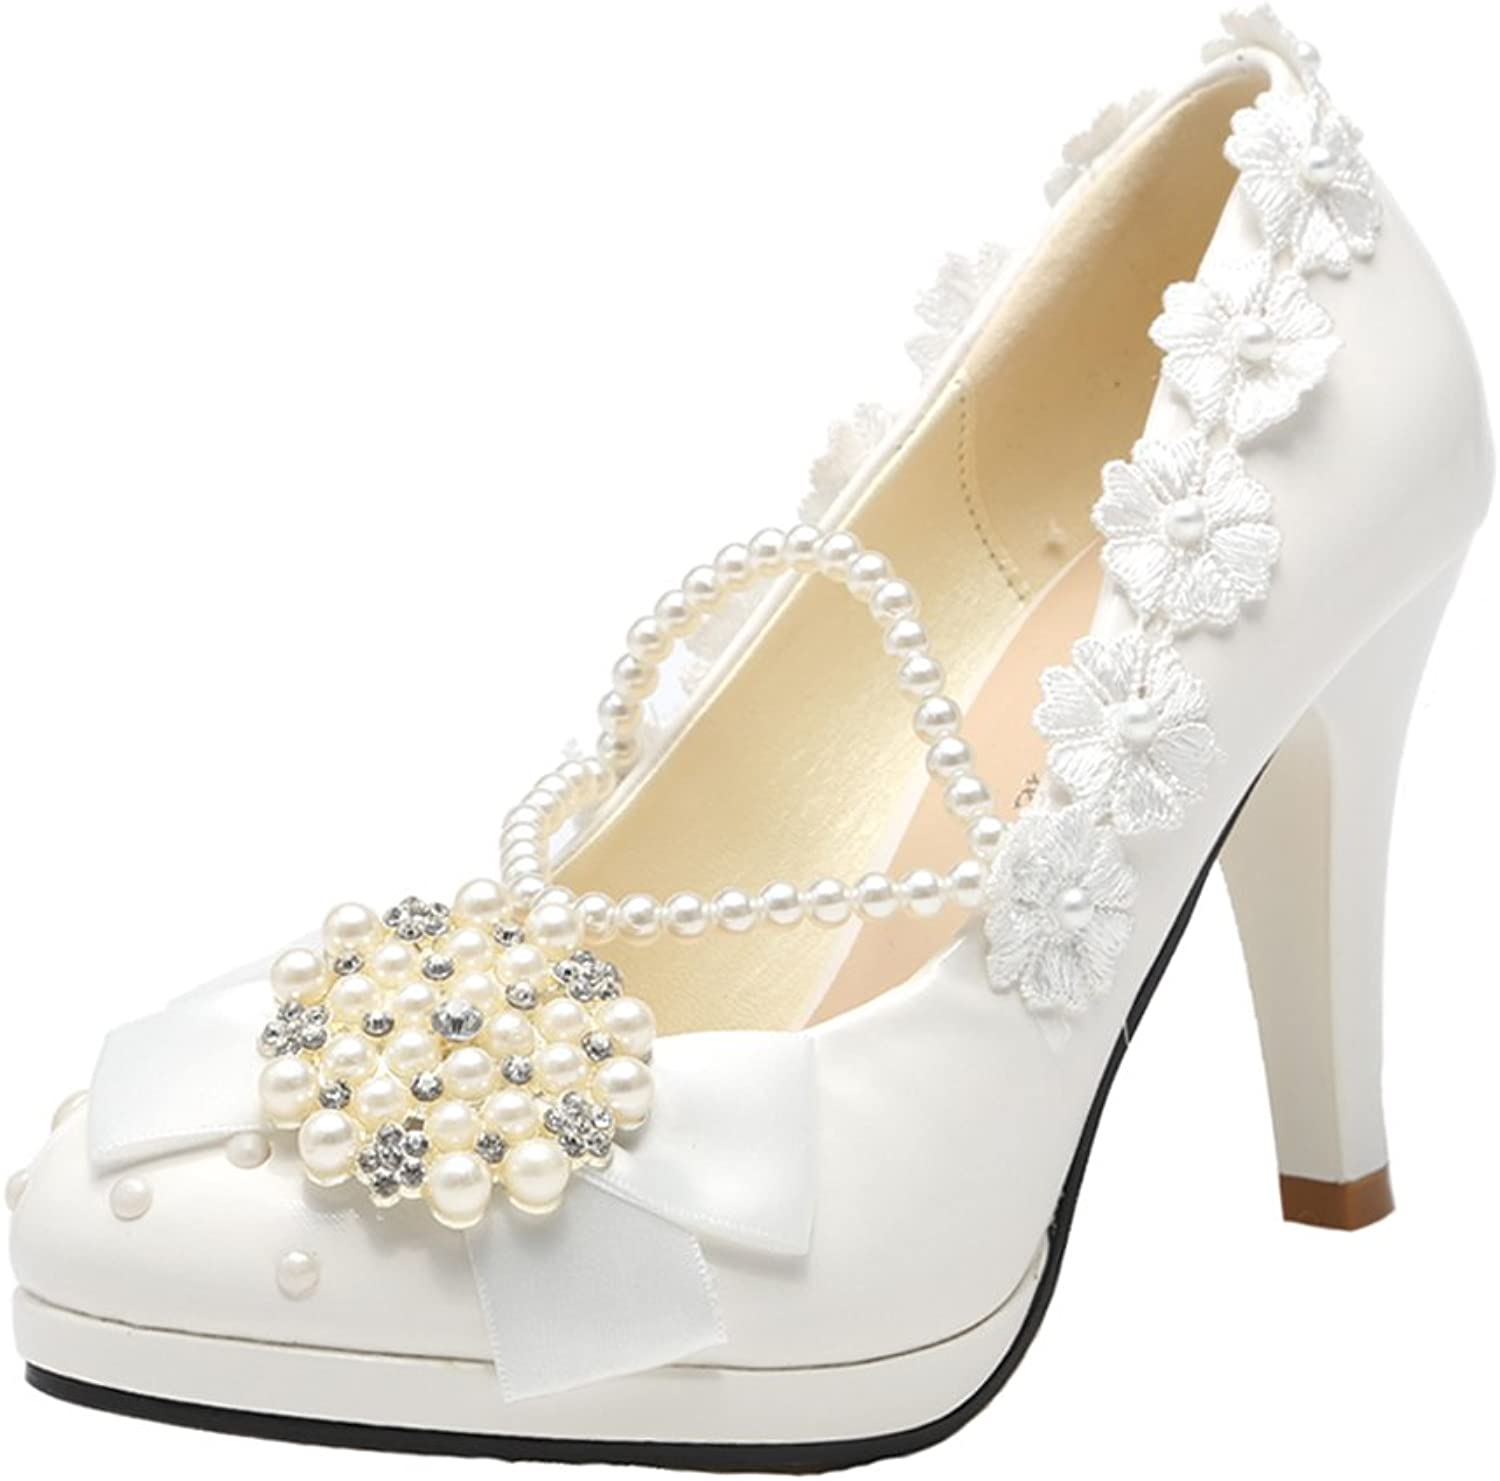 Getmorebeauty Women's Pink Lace Floral Flowers Wedding shoes High Heels